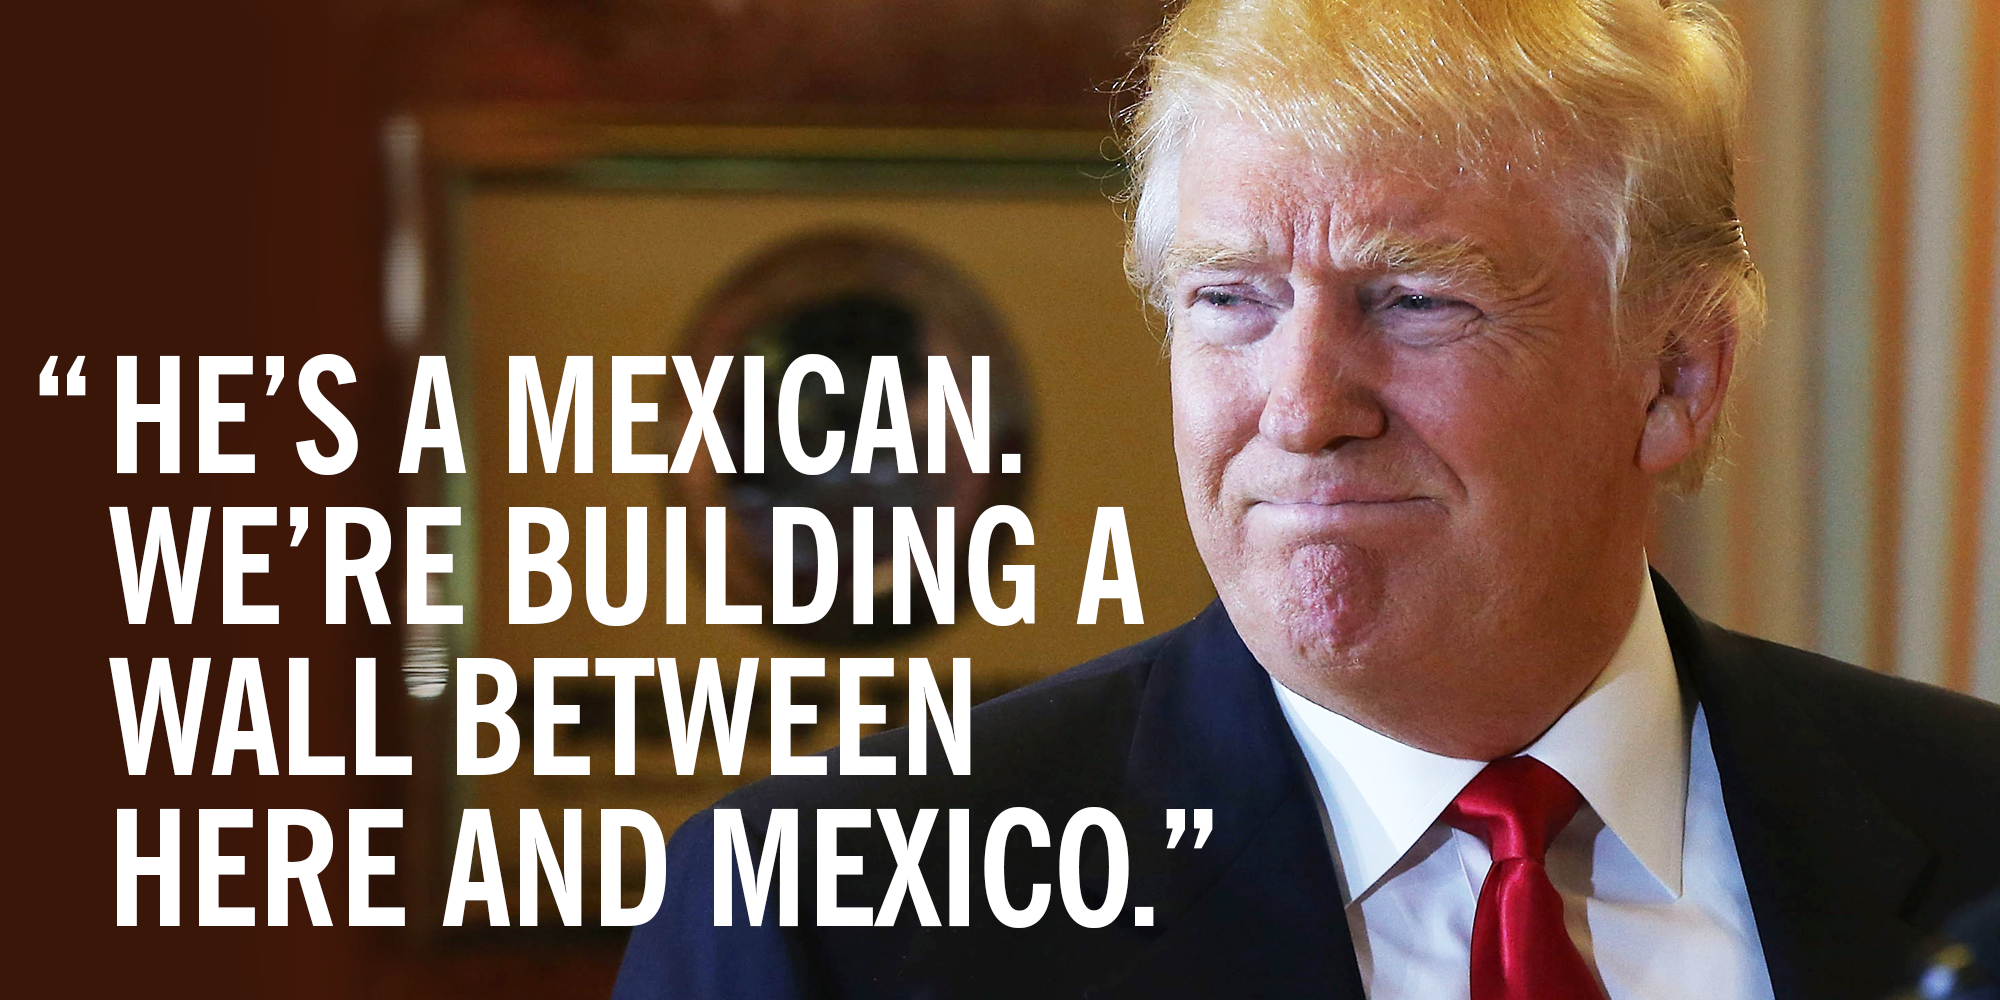 Donald Trump Racist Quotes Donald Trump Is Racist  Trump's Remarks About Trump University